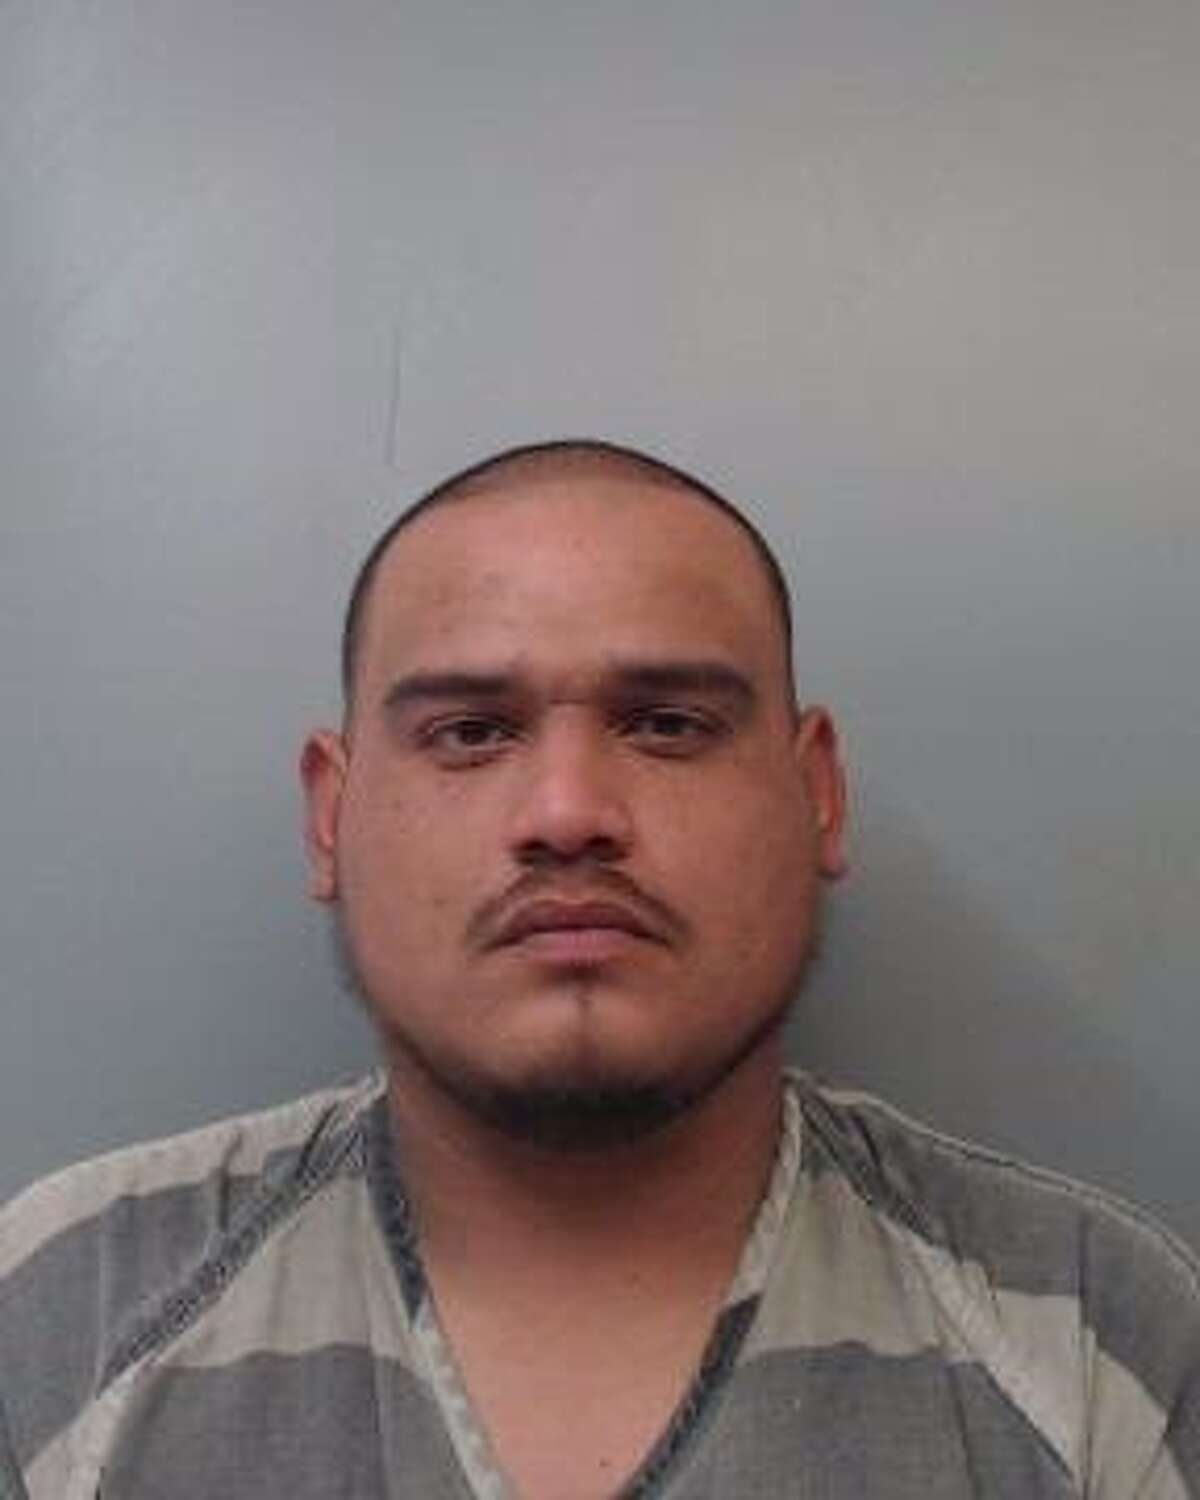 Jose Ignacio Lopez, 29, was arrested and charged with assault, family violence.